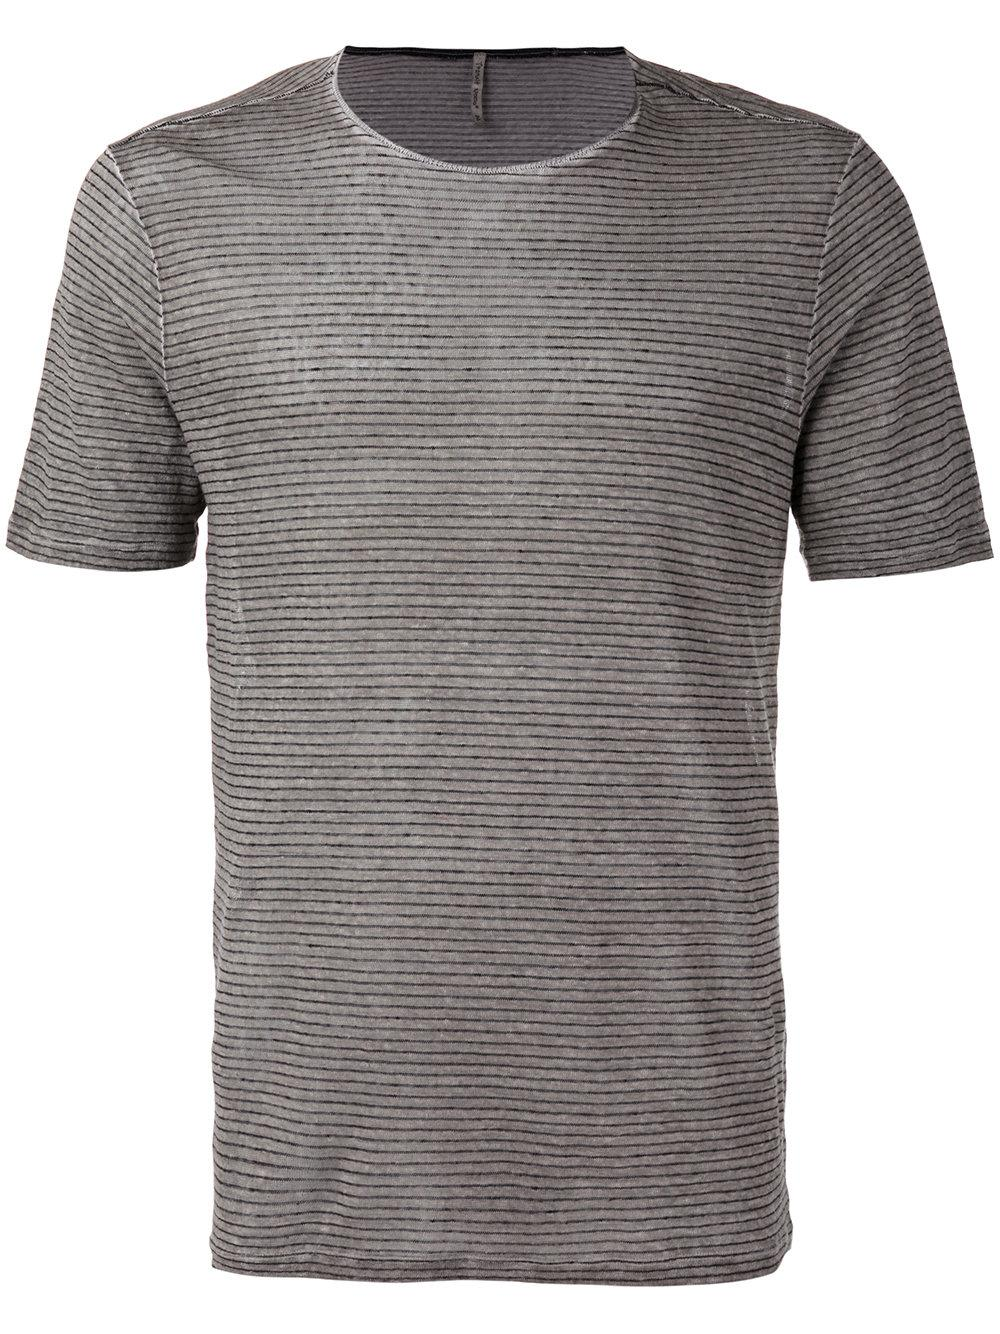 Transit striped t shirt in grey for men lyst for Grey striped t shirt